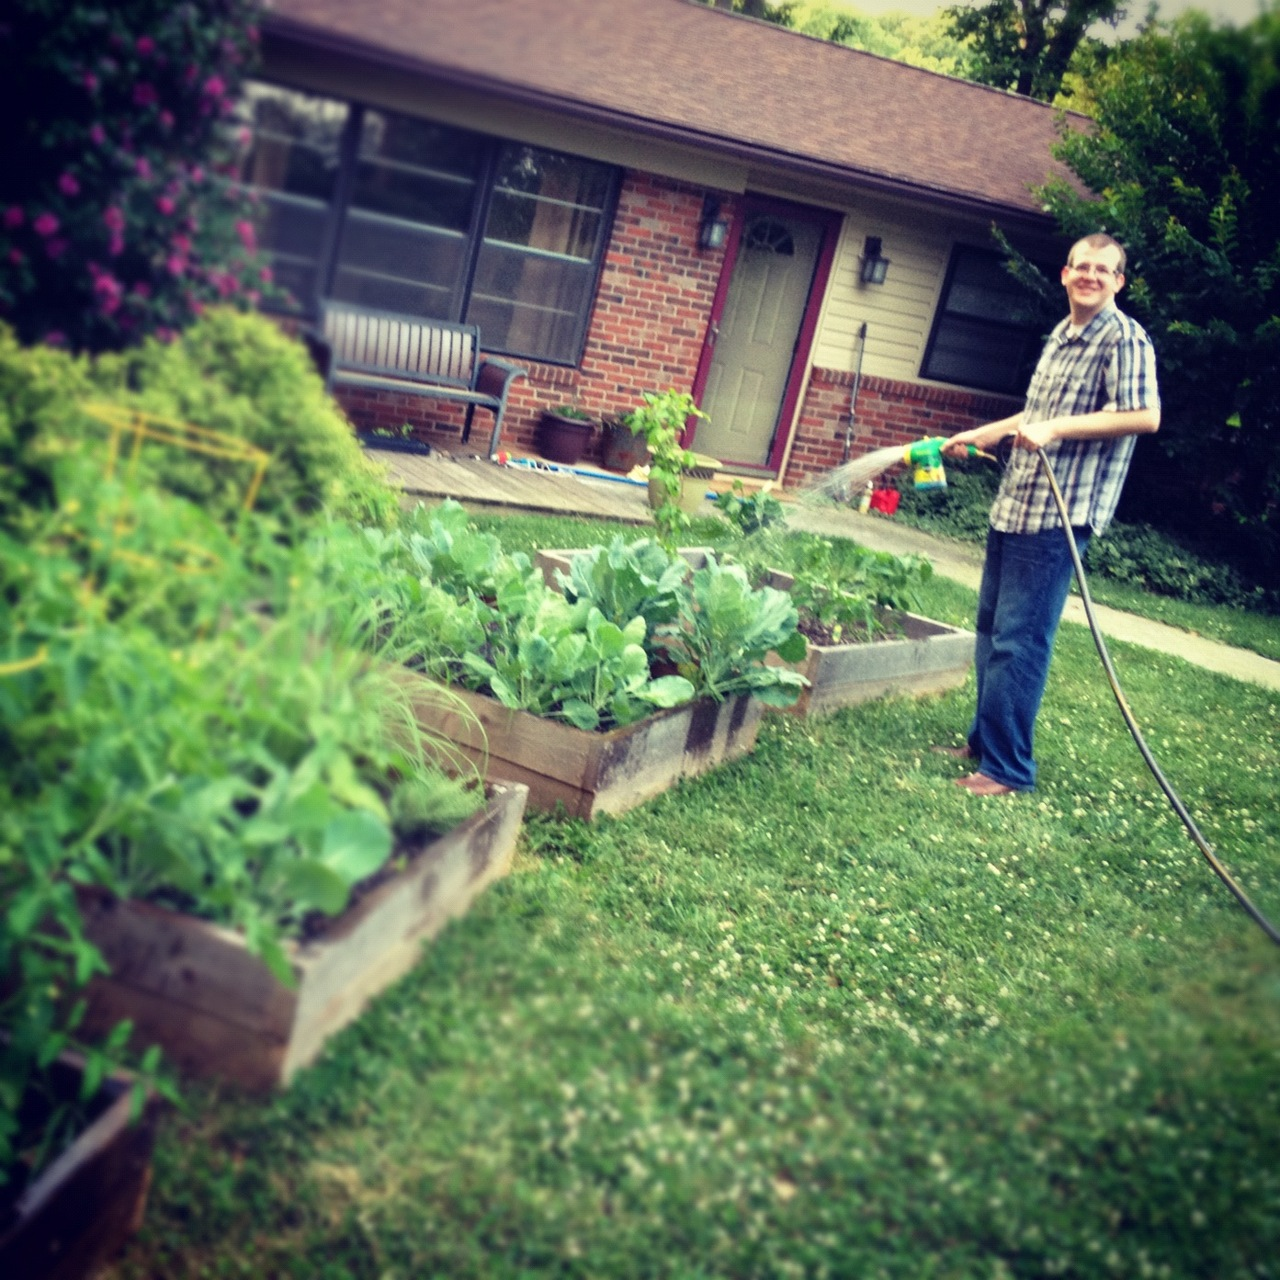 Brandon is good front yard farmer.